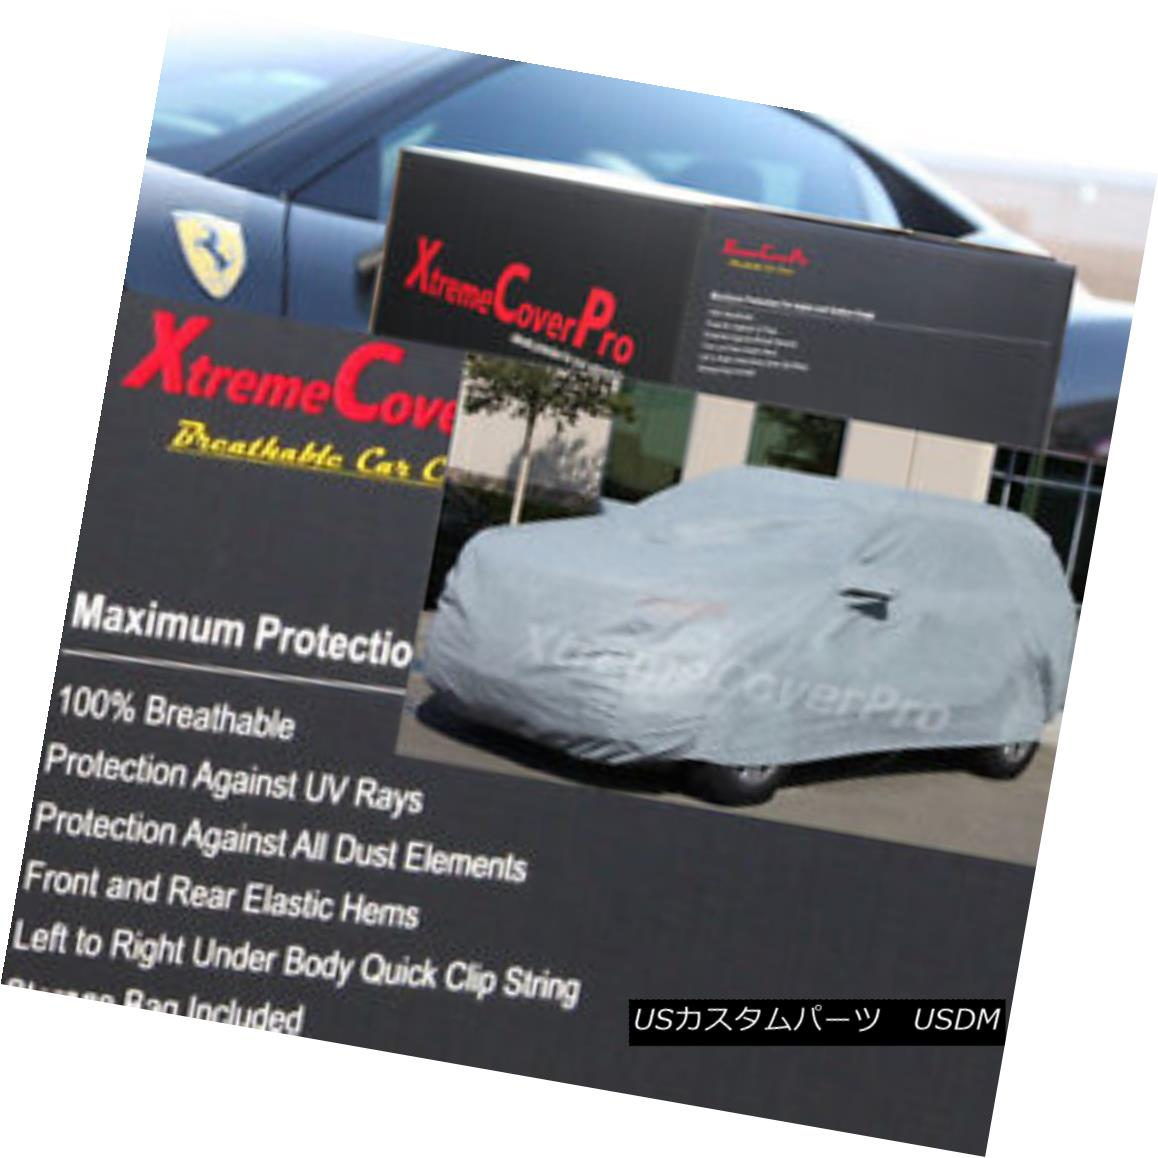 カーカバー 2006 2007 2008 2009 GMC Envoy XL Model Breathable Car Cover w/MirrorPocket 2006年2007年2008年GMCエンボイXLモデル通気性車カバー付き(MirrorPocket)